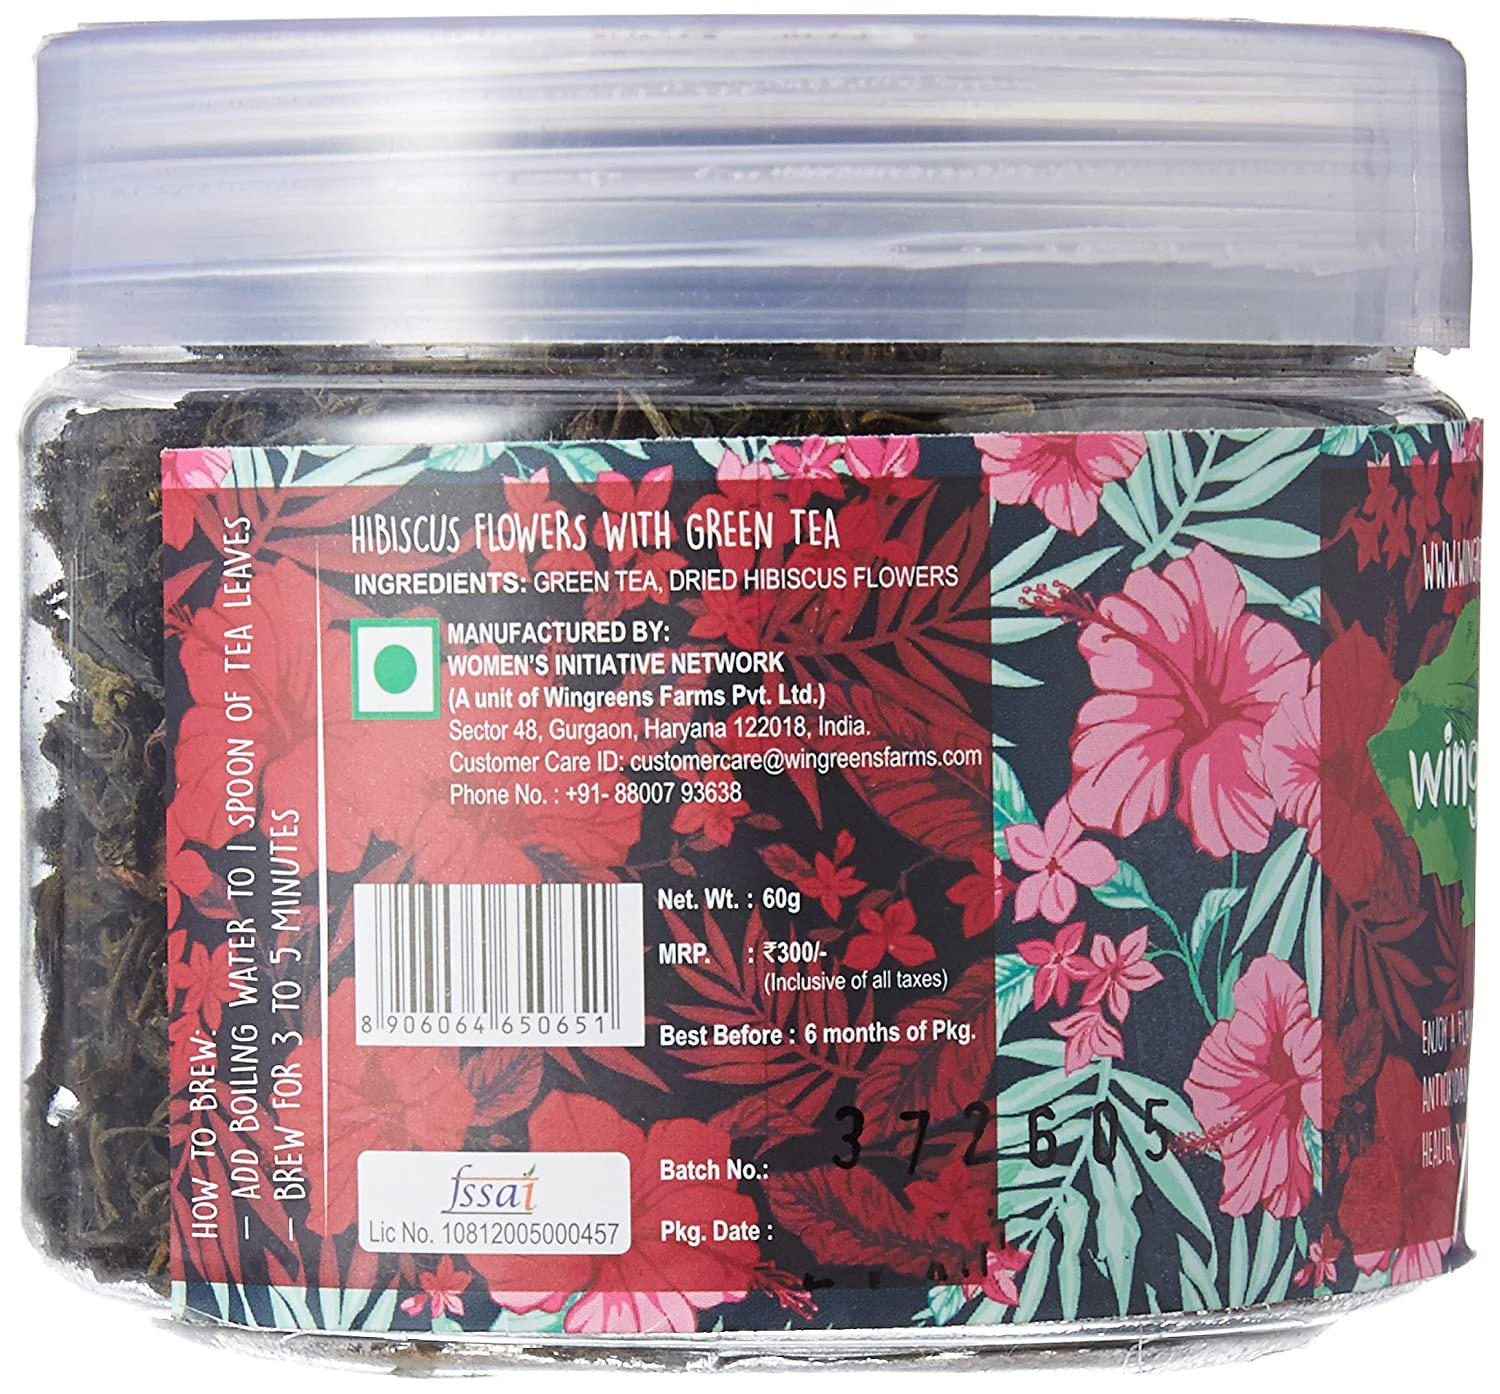 Wingreens Farms Hibiscus Flowers With Green Tea 60g Amazon